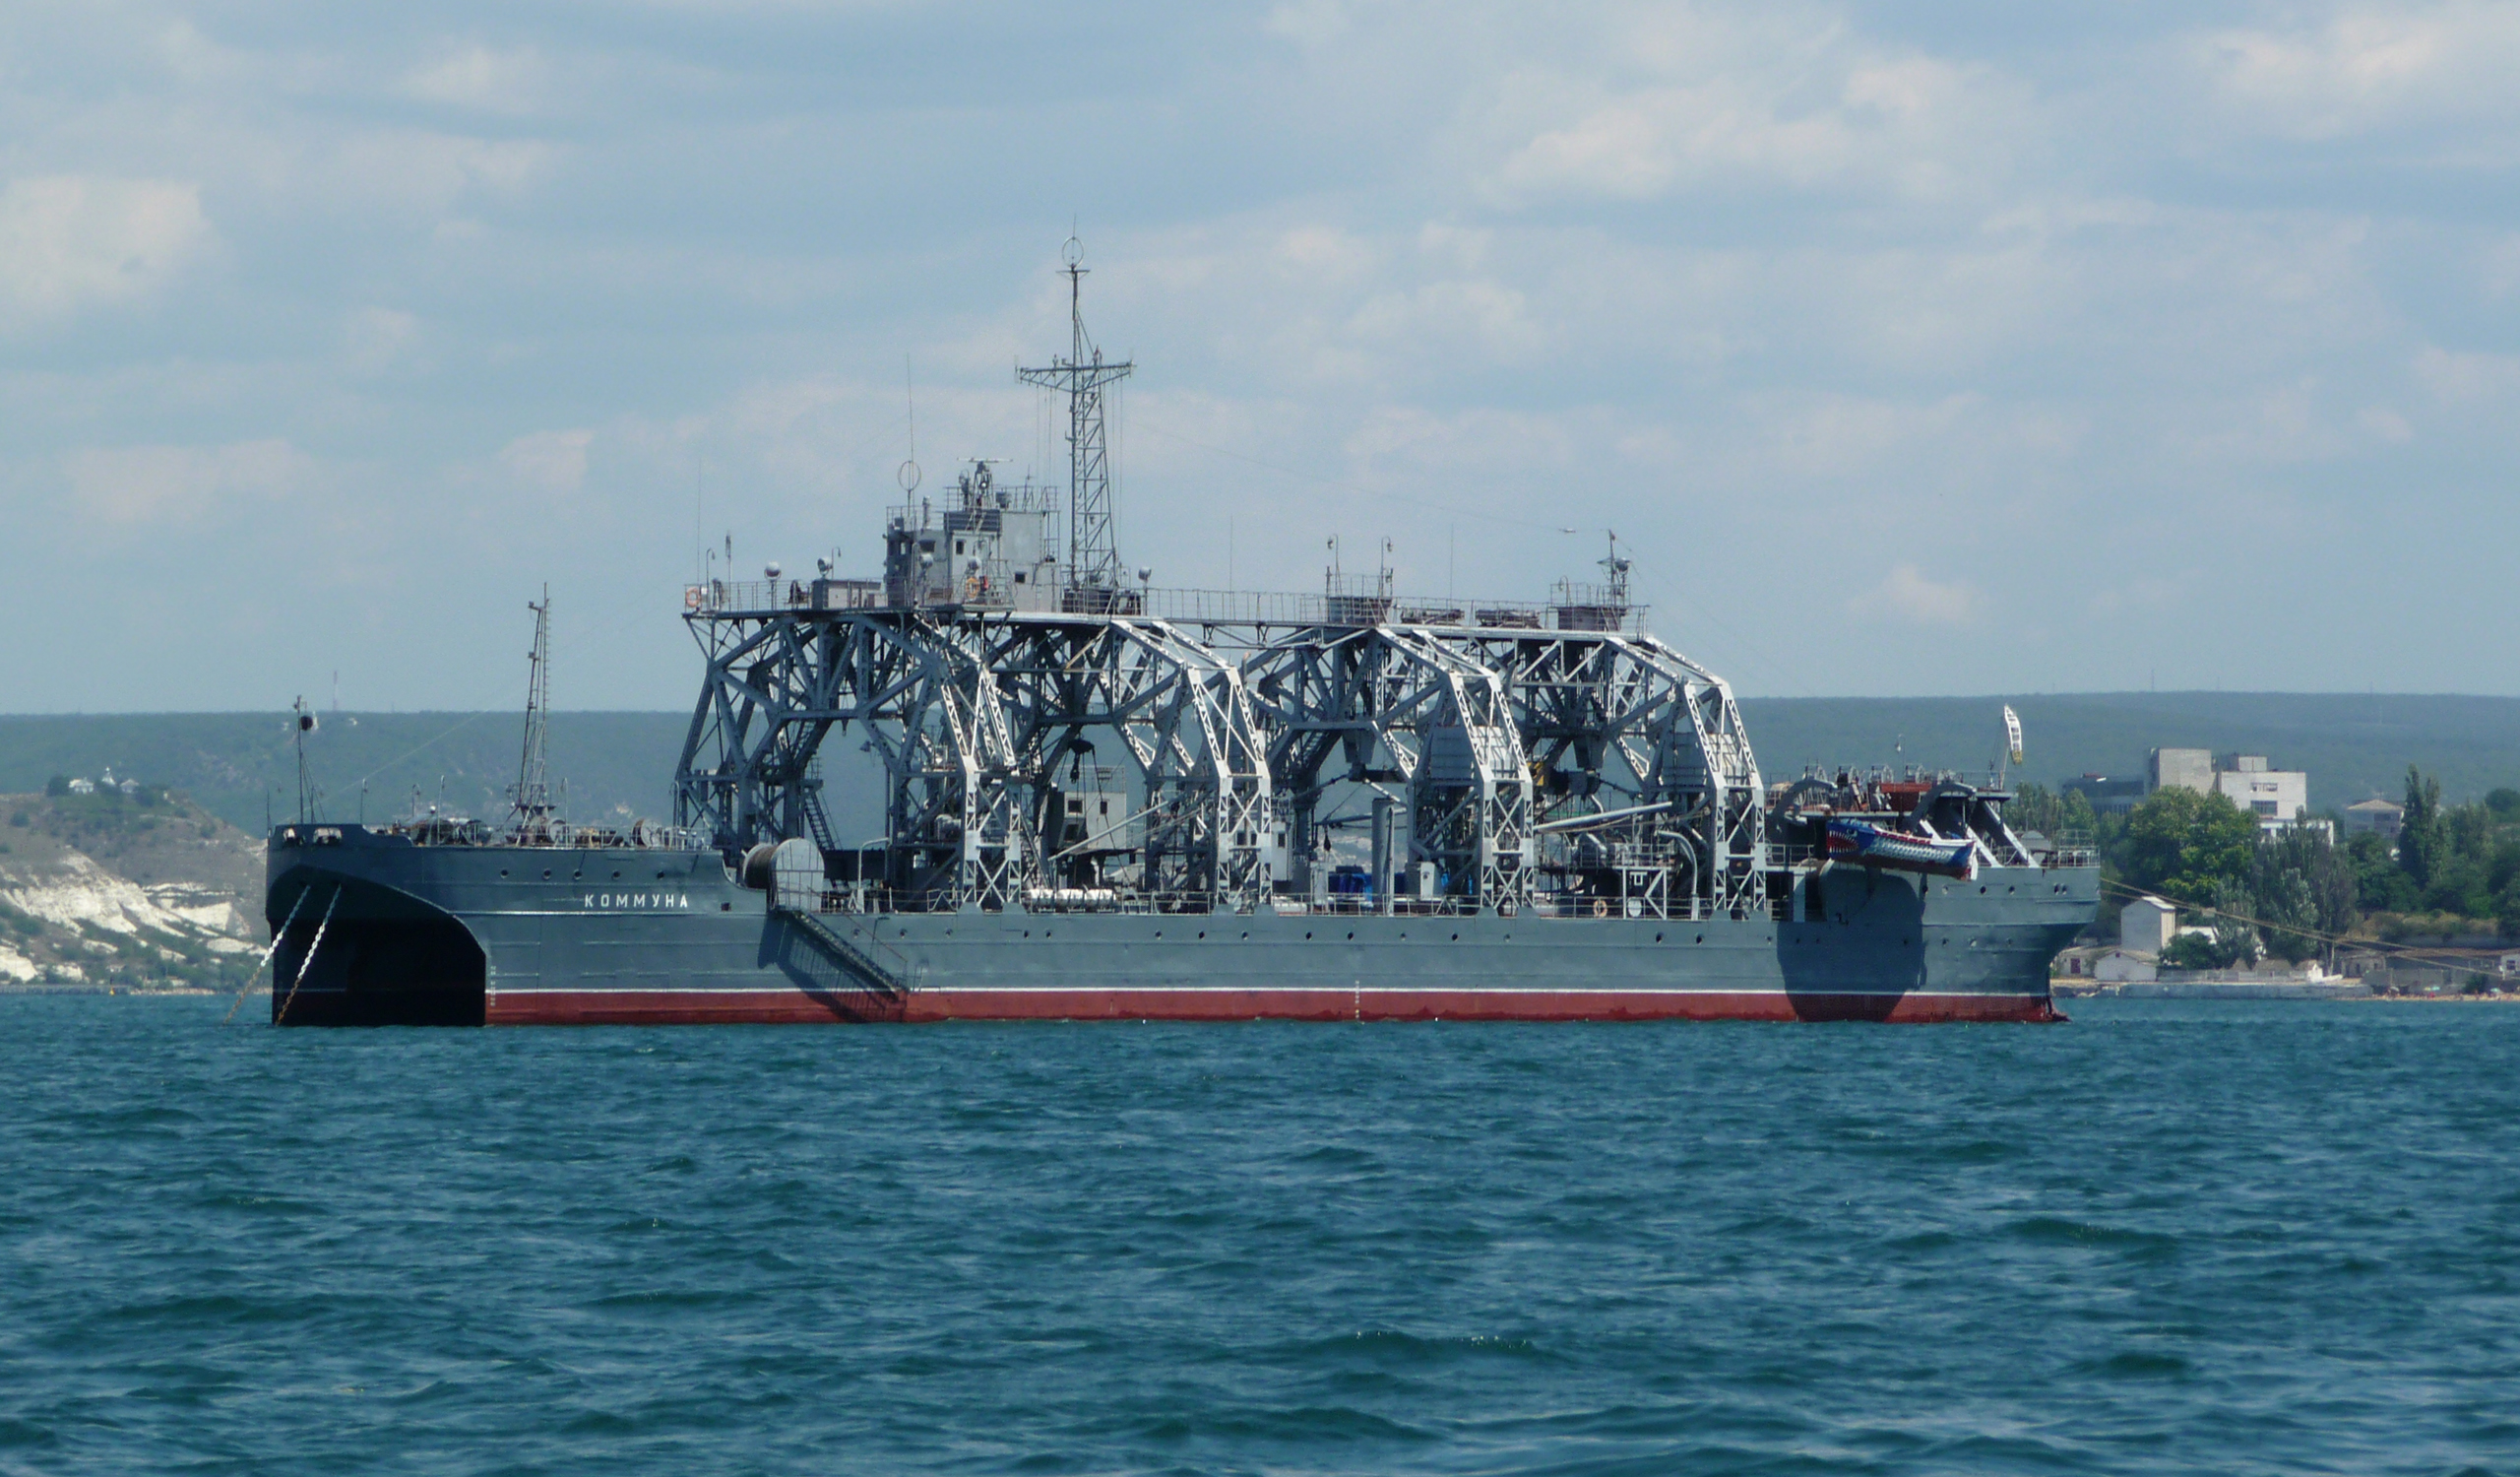 [Pilt: Kommuna_rescue_ship_2009_G2.jpg]